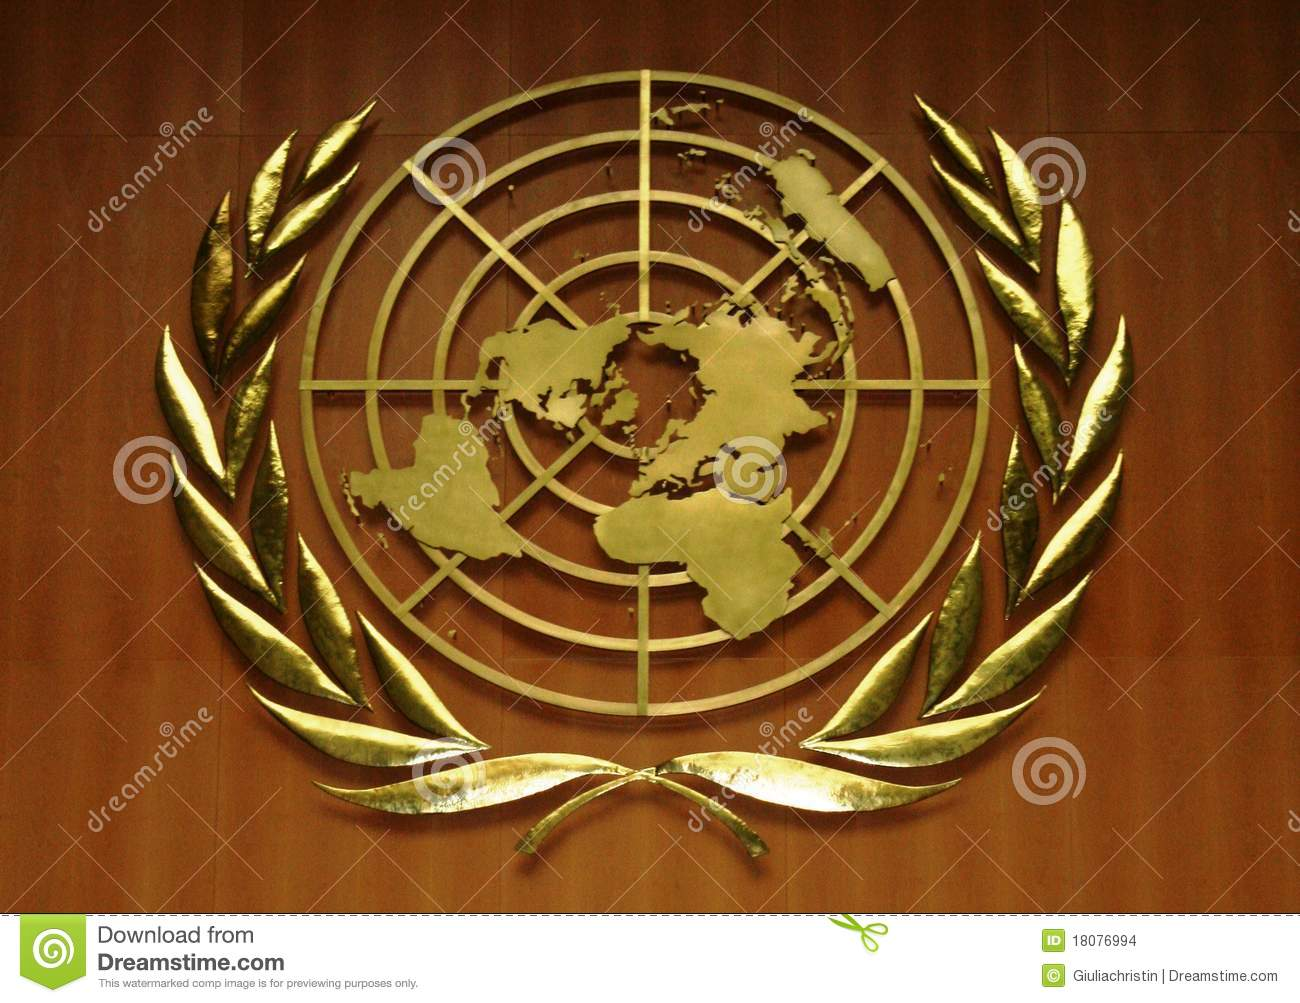 united nations logo editorial stock image image of nations 18076994. Black Bedroom Furniture Sets. Home Design Ideas